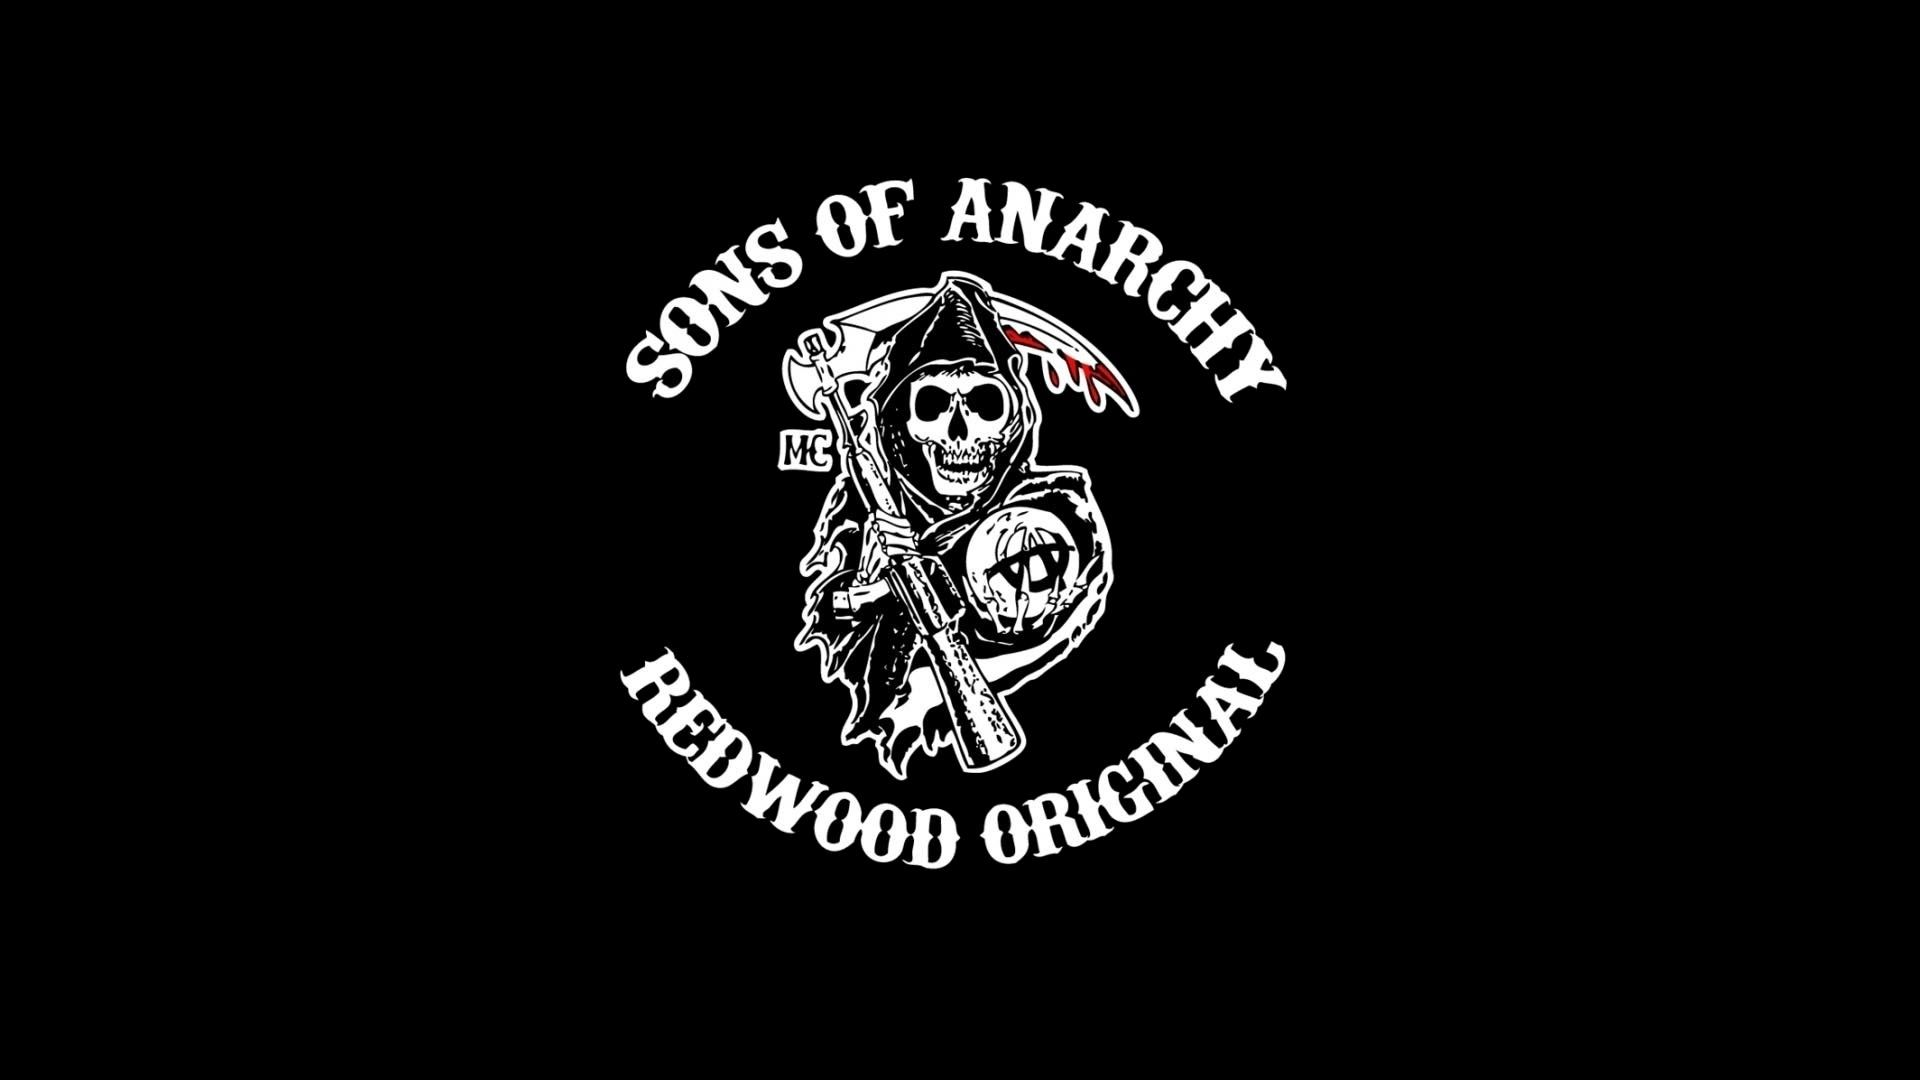 10 Top Sons Of Anarchy Wallpaper Hd Full Hd 1080p For Pc